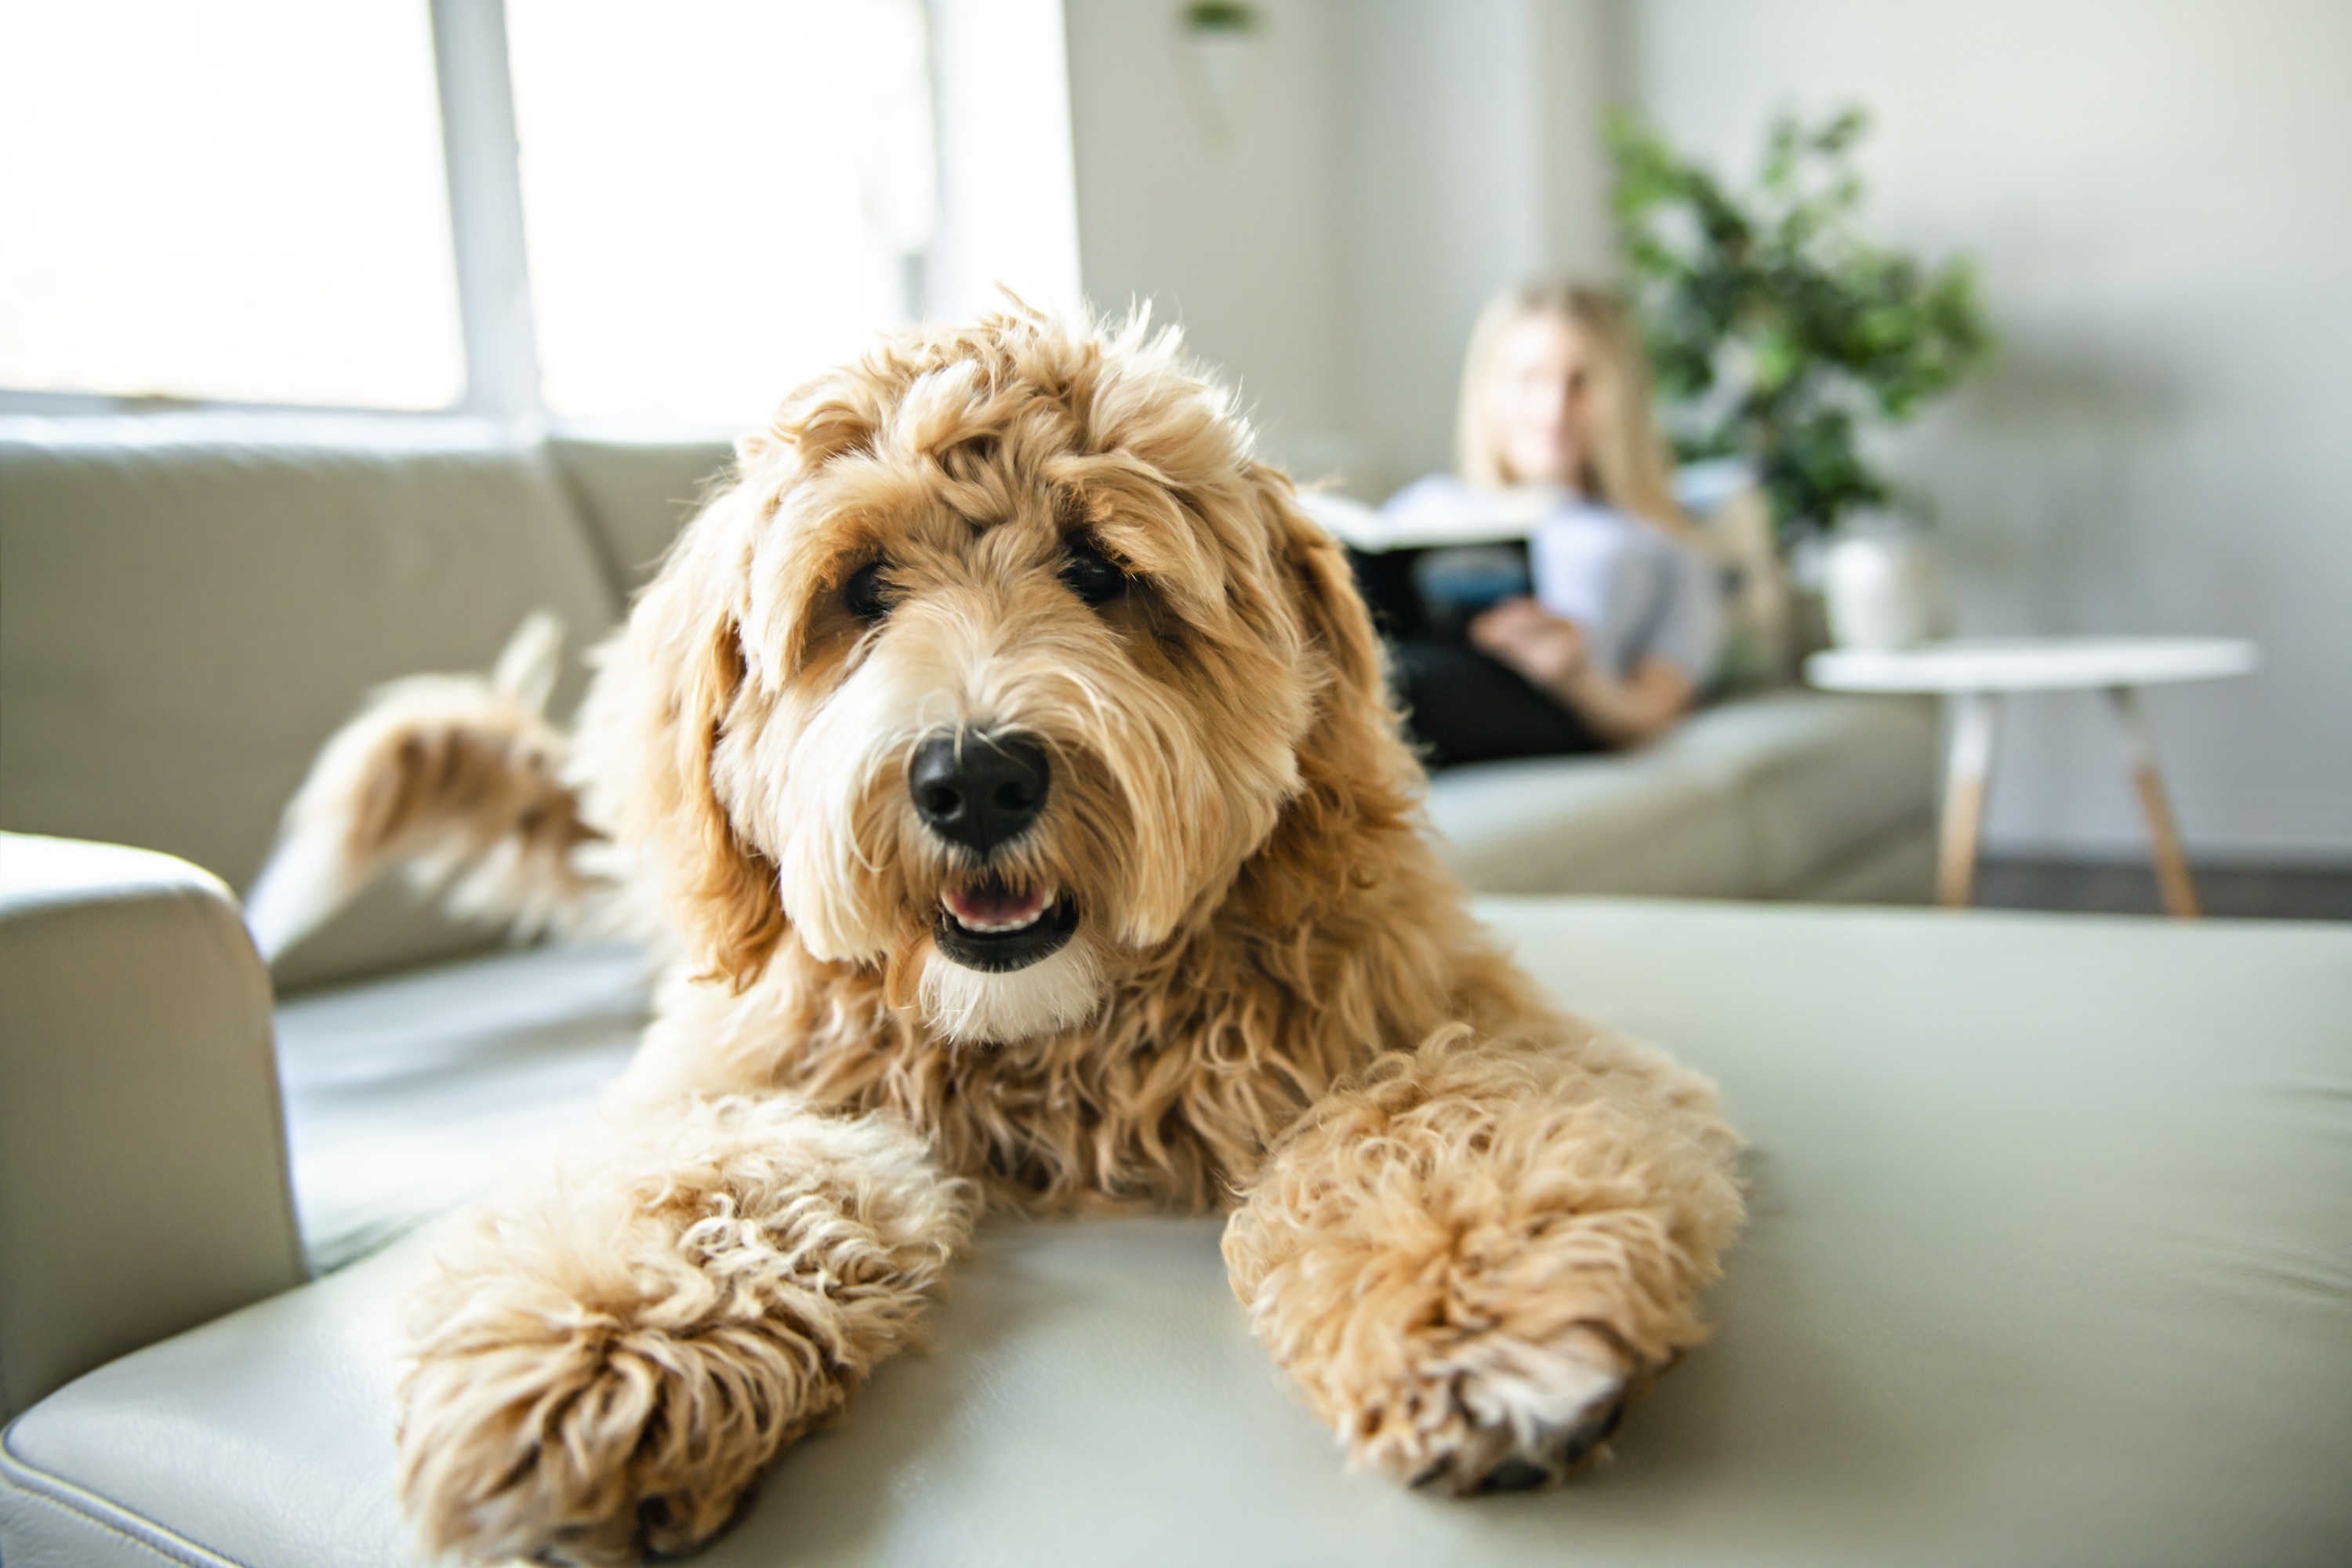 A golden labradoodle on a grey couch with a woman reading behind him.